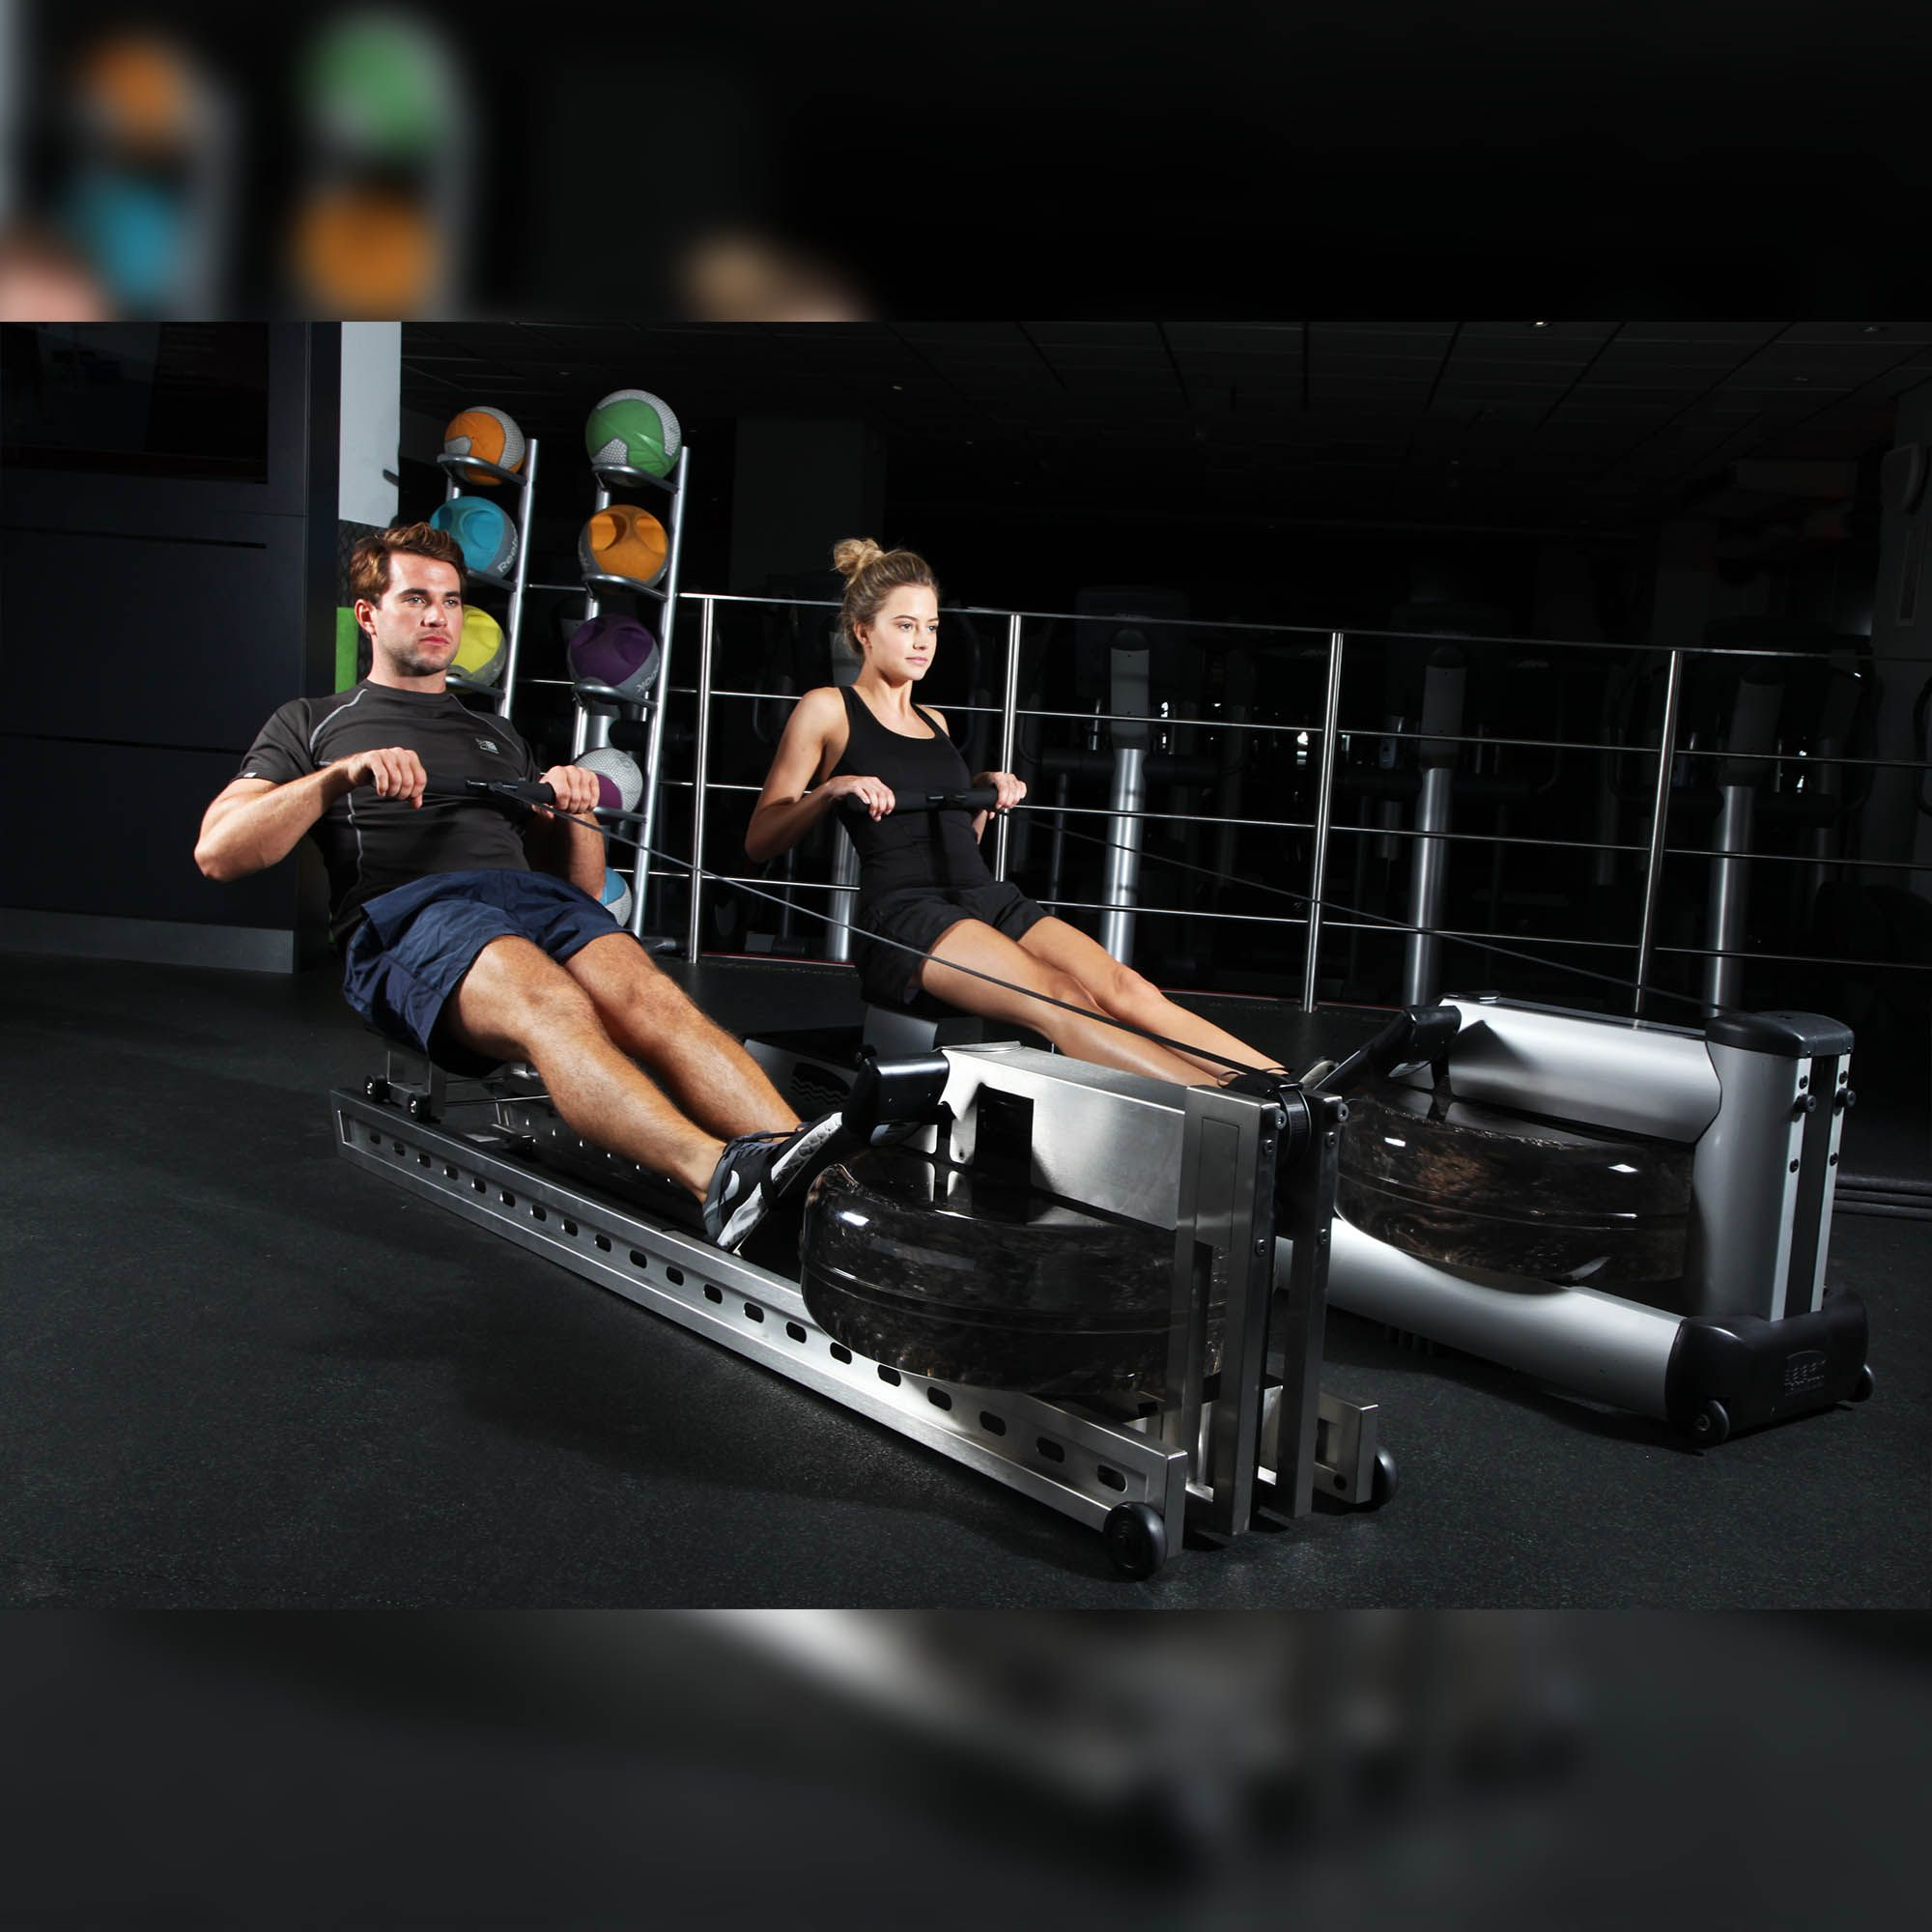 Waterrower S1 Rowing Machine With S4 Monitor